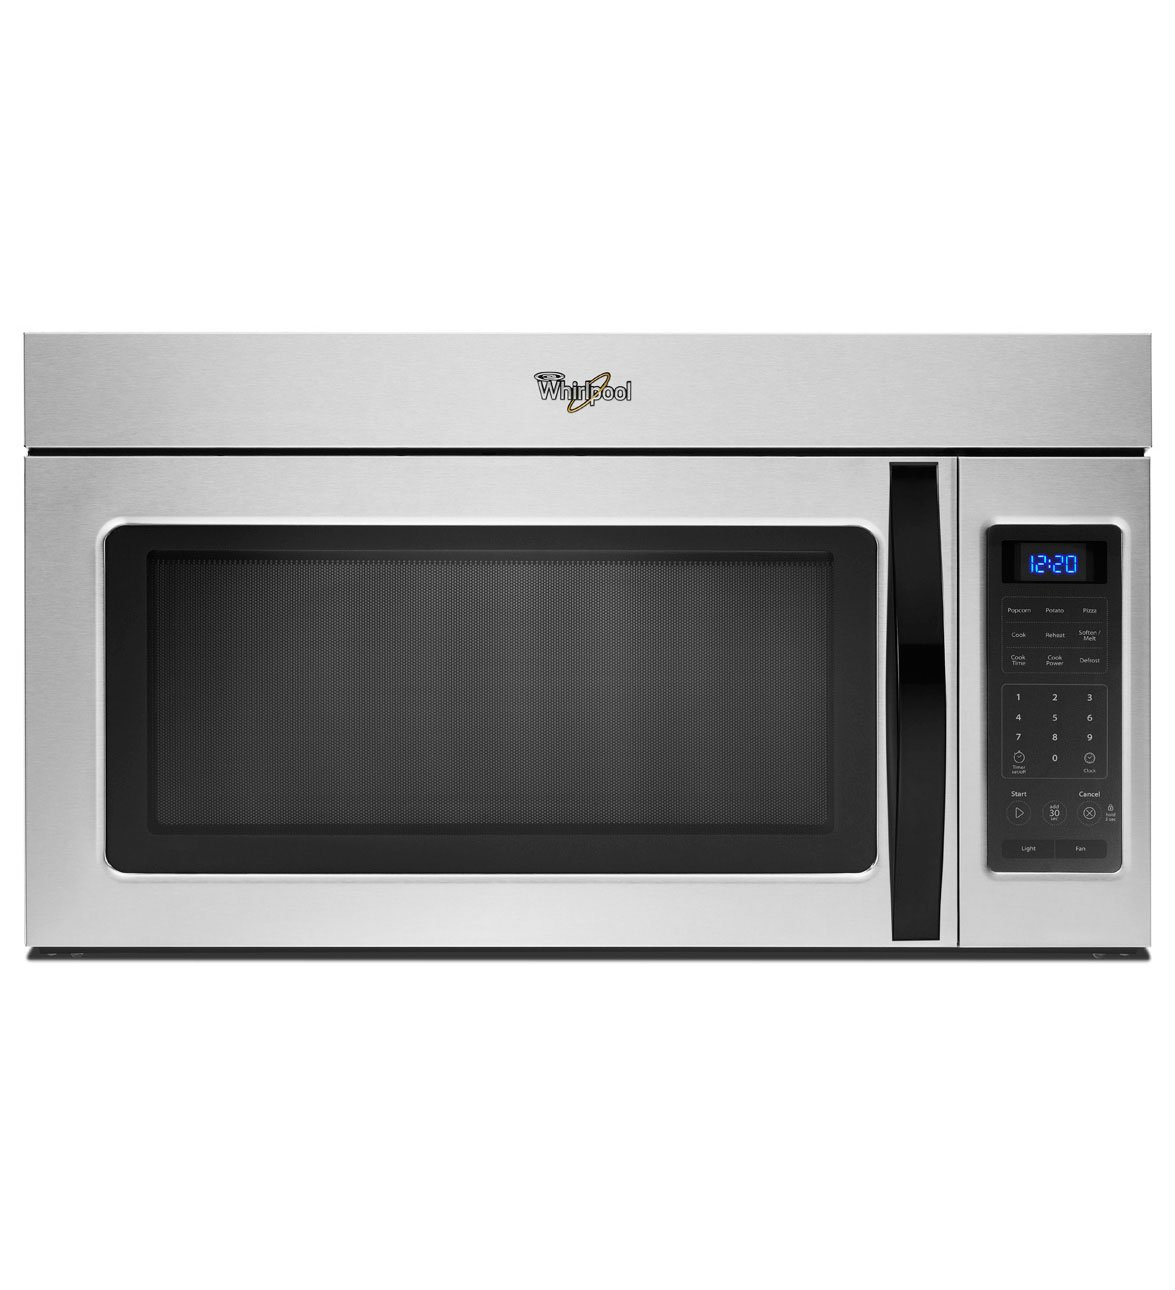 Whirlpool WMH31017AD 1.7 Cu. Ft. Stainless Look Over-the-Range Microwave